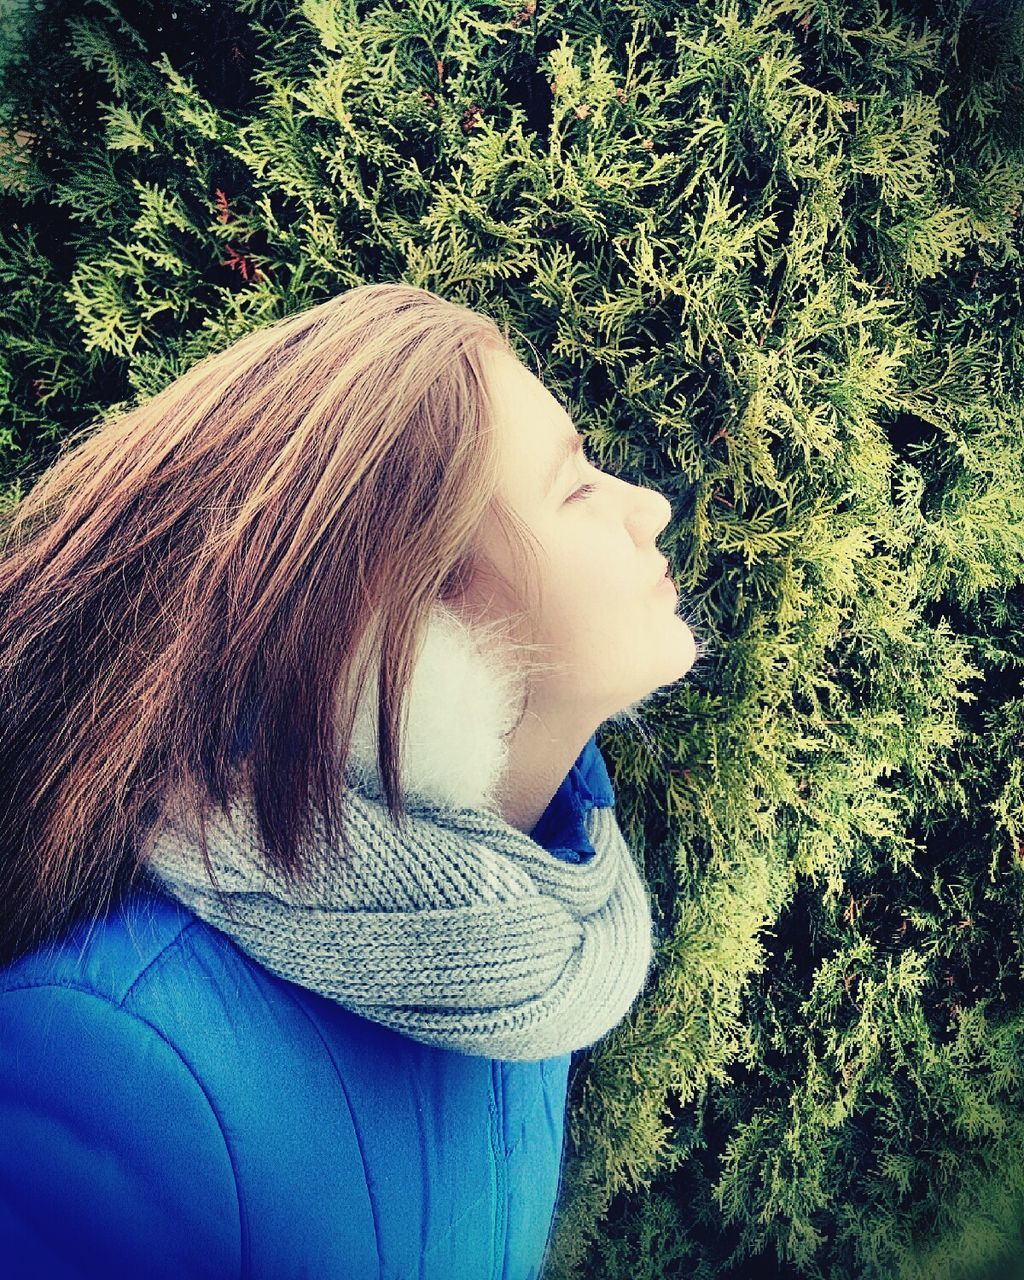 one person, day, real people, field, nature, lifestyles, outdoors, women, blond hair, grass, young women, tree, young adult, close-up, people